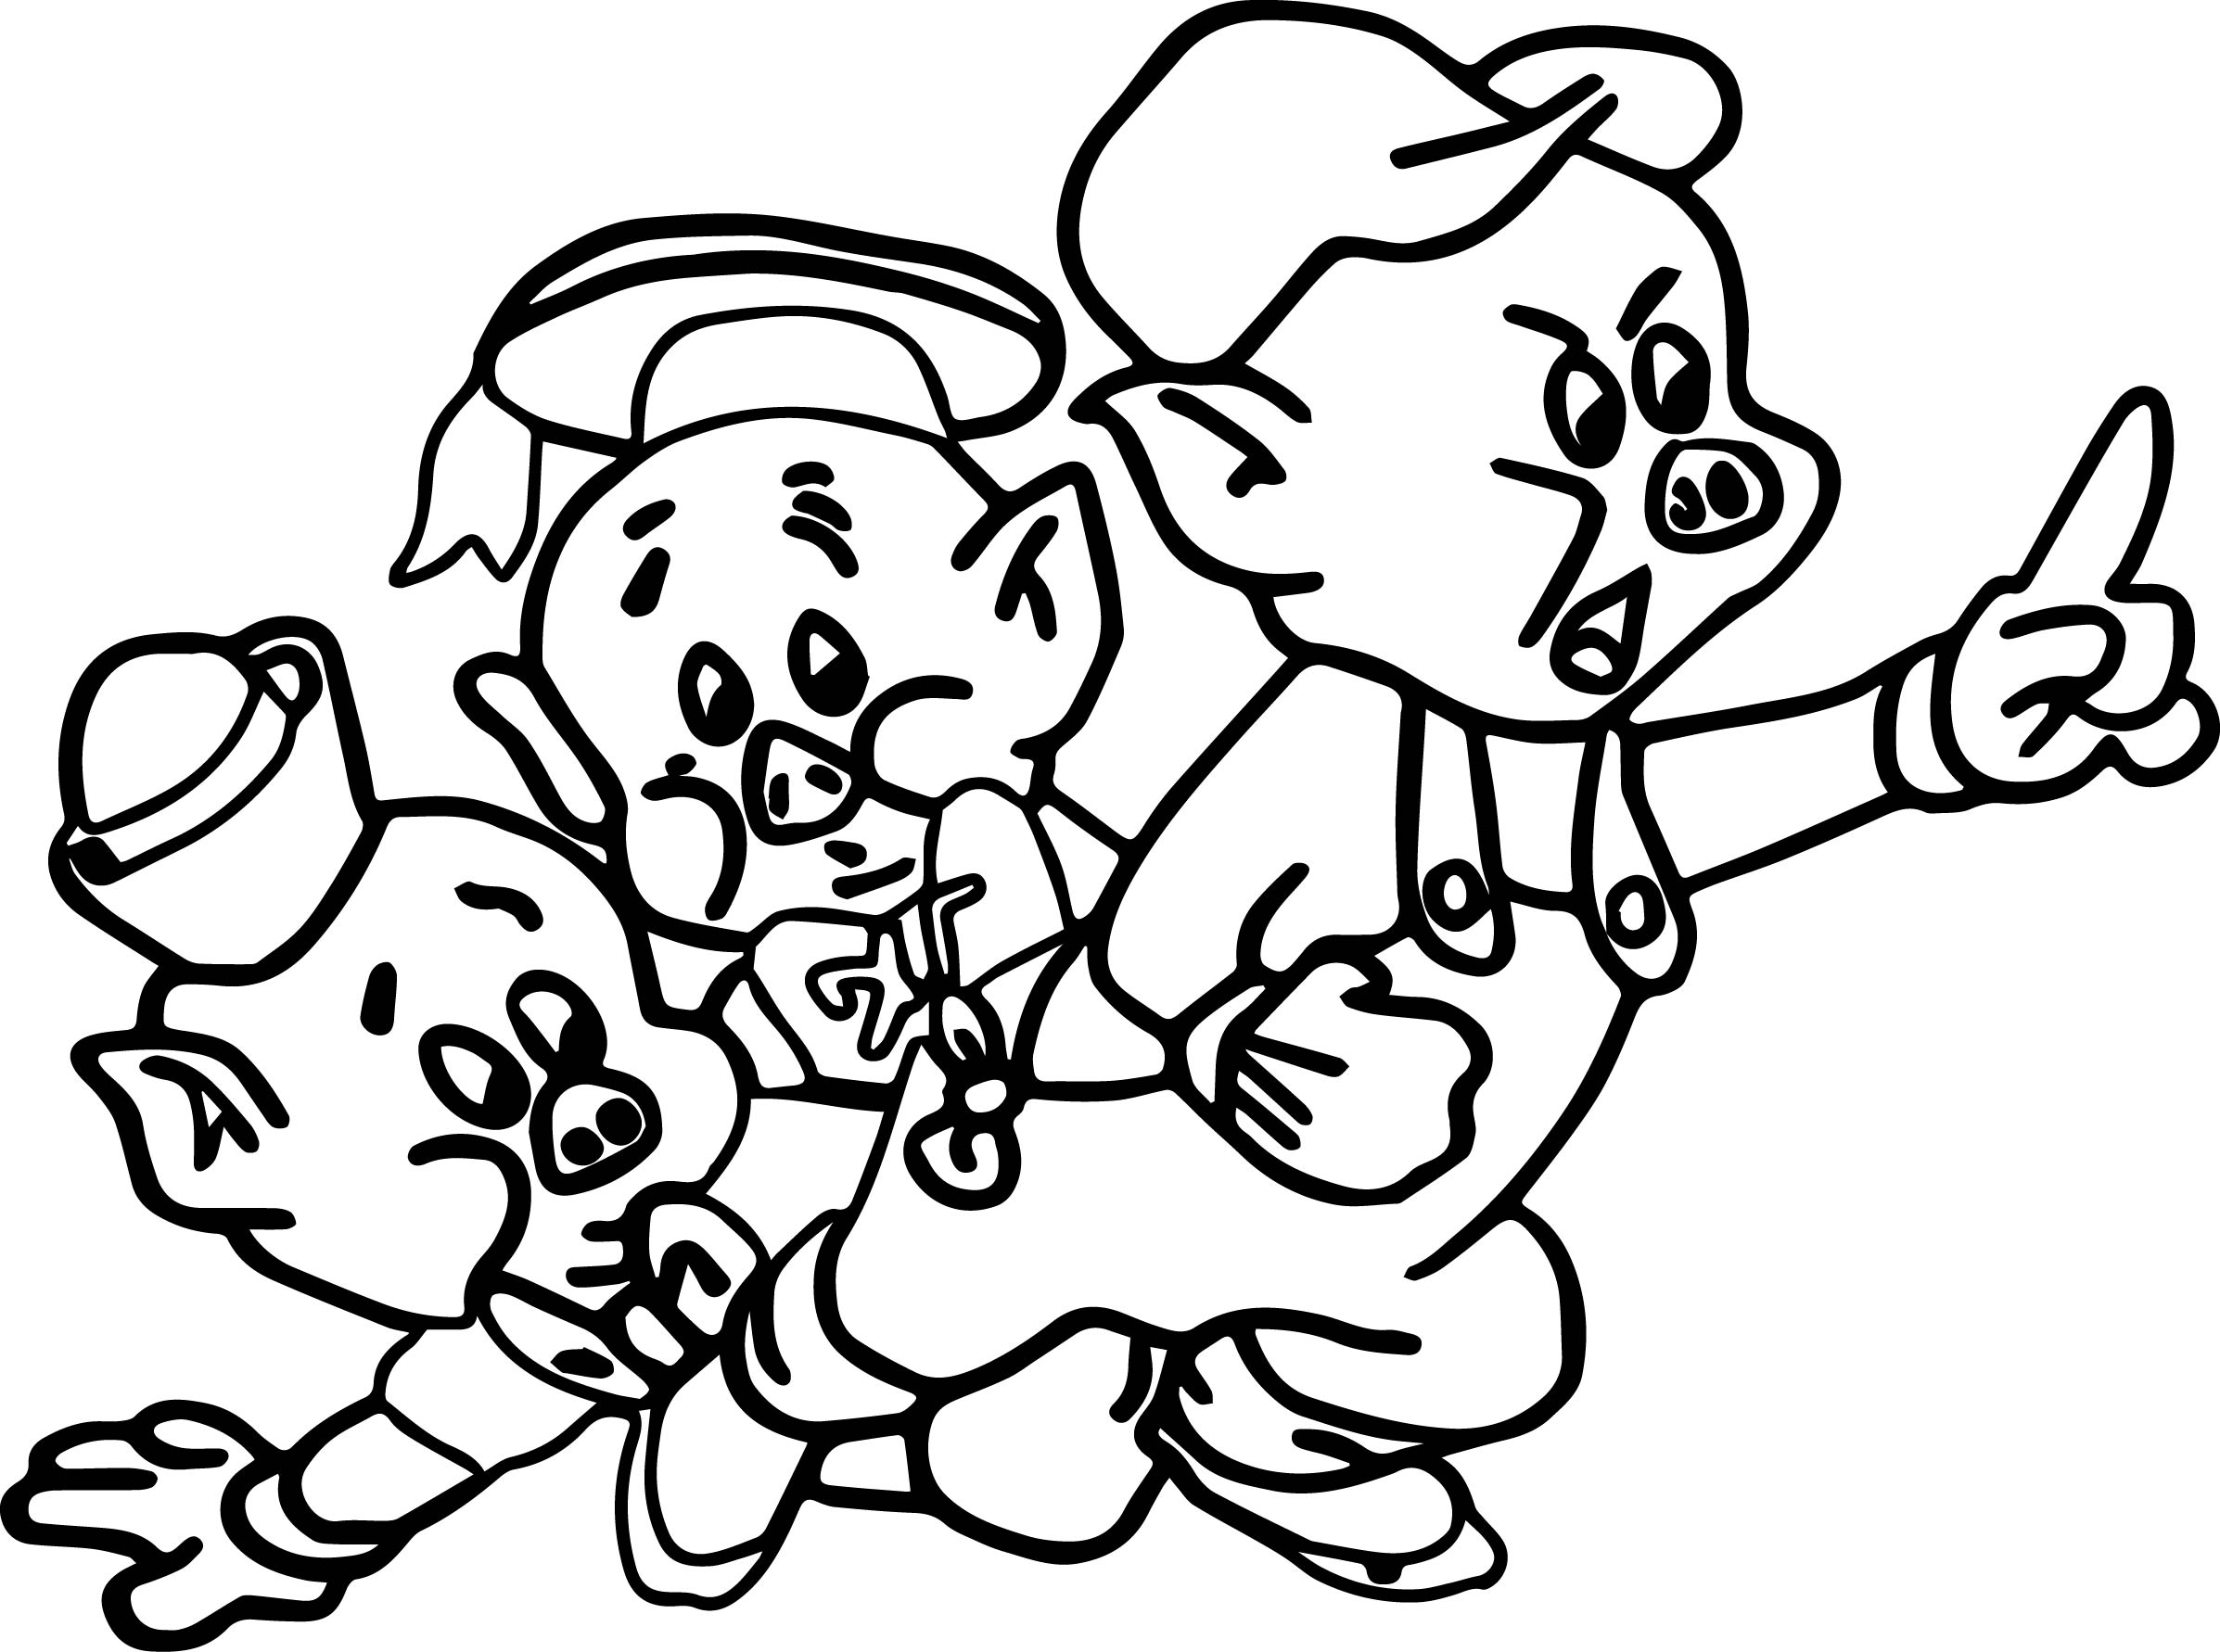 Coloring pages 3 little pigs - Three Little Pig Coloring Page